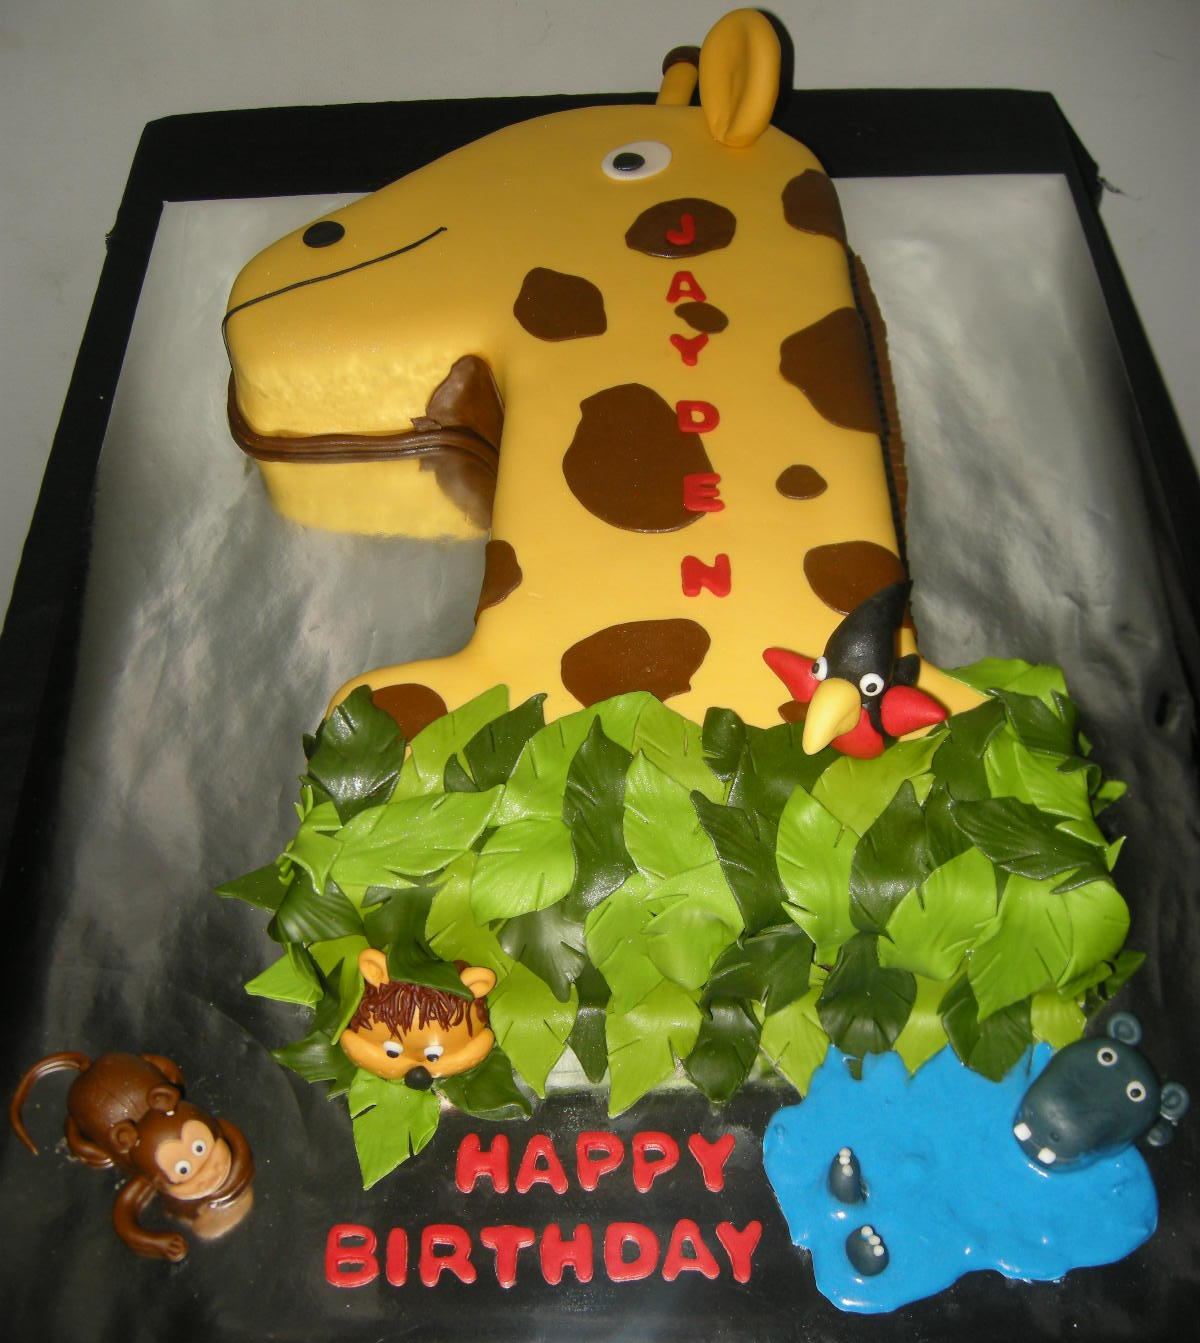 Harshis Cakes Bakes Jungle Theme First Birthday Cake